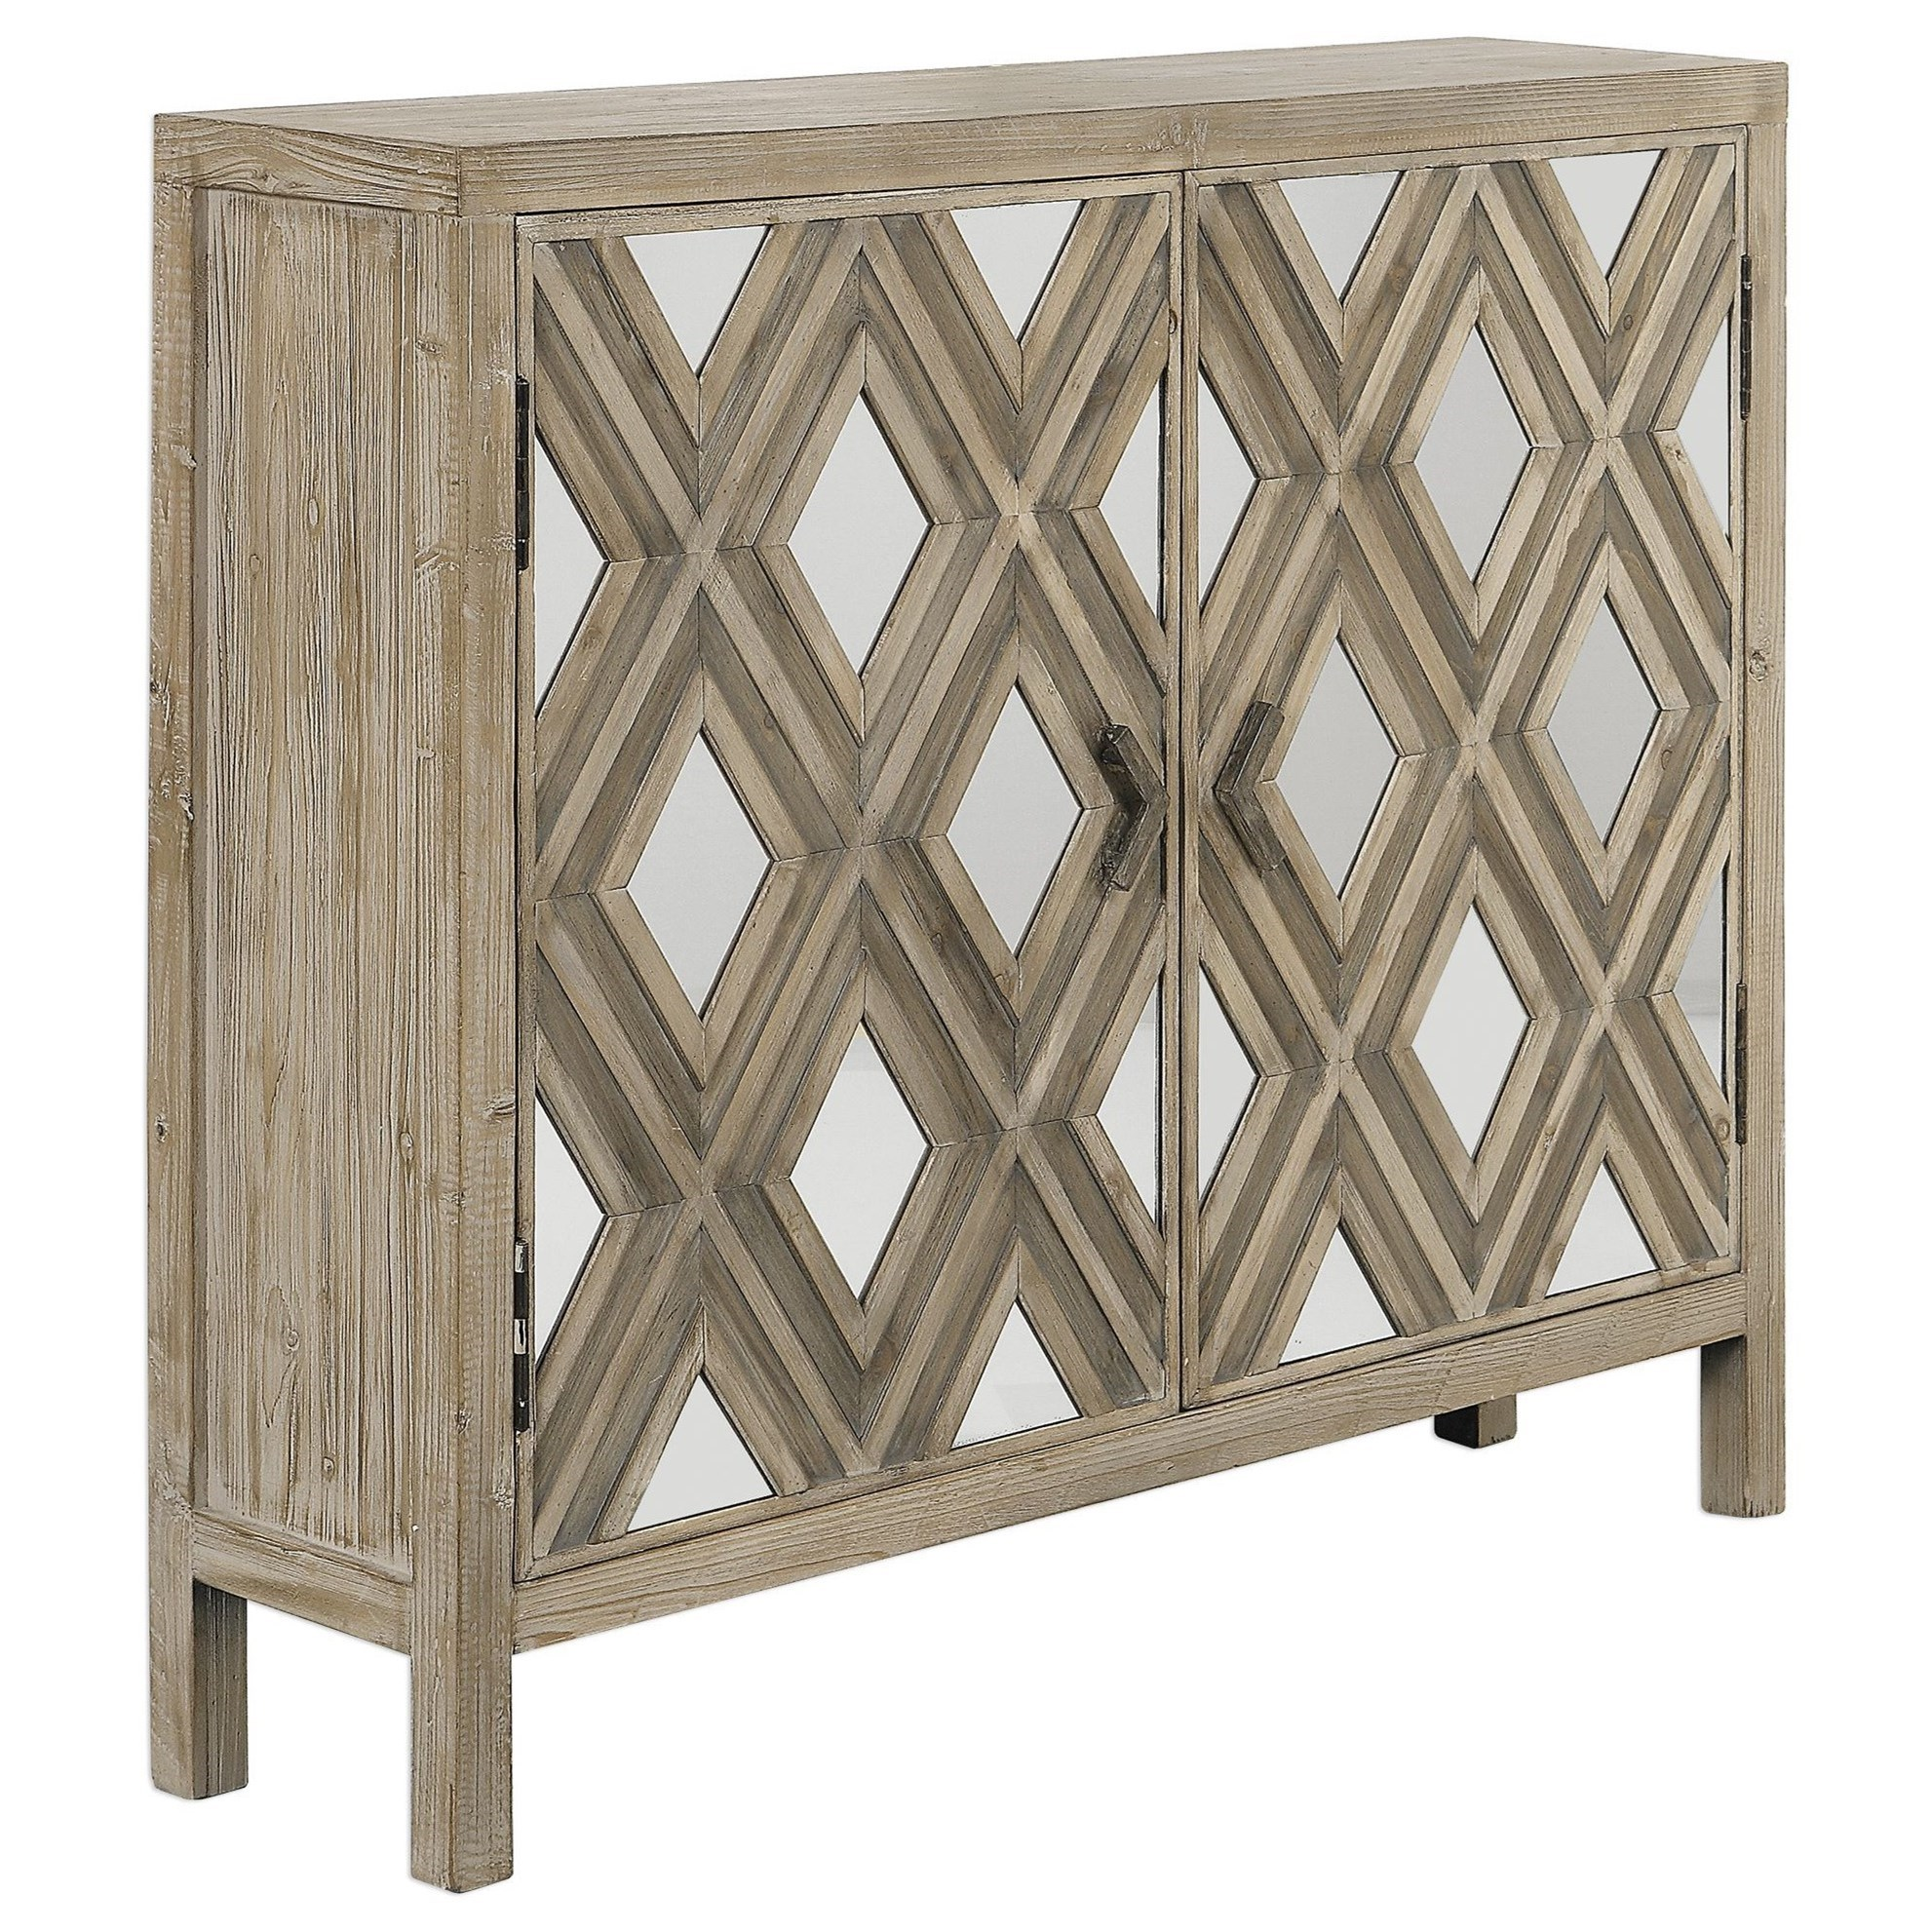 Accent Furniture - Chests Tahira Mirrored Accent Cabinet by Uttermost at Del Sol Furniture